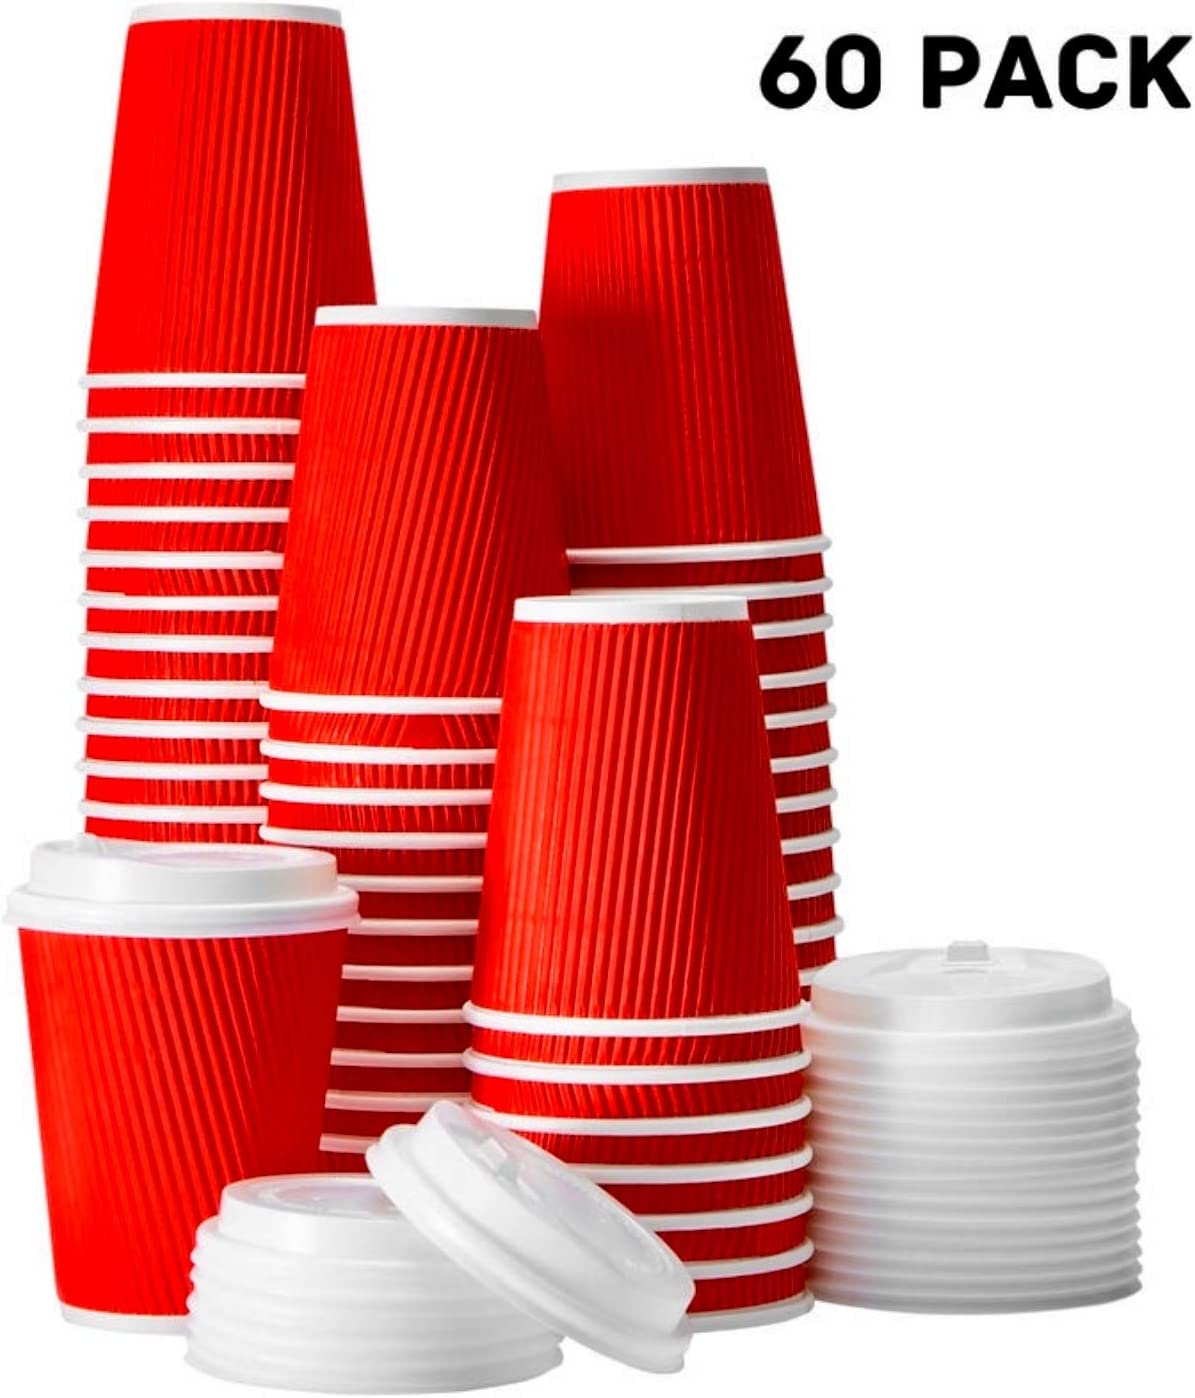 FarSmart Disposable Hot Paper Coffee Cups With Lids To Go 12 Oz